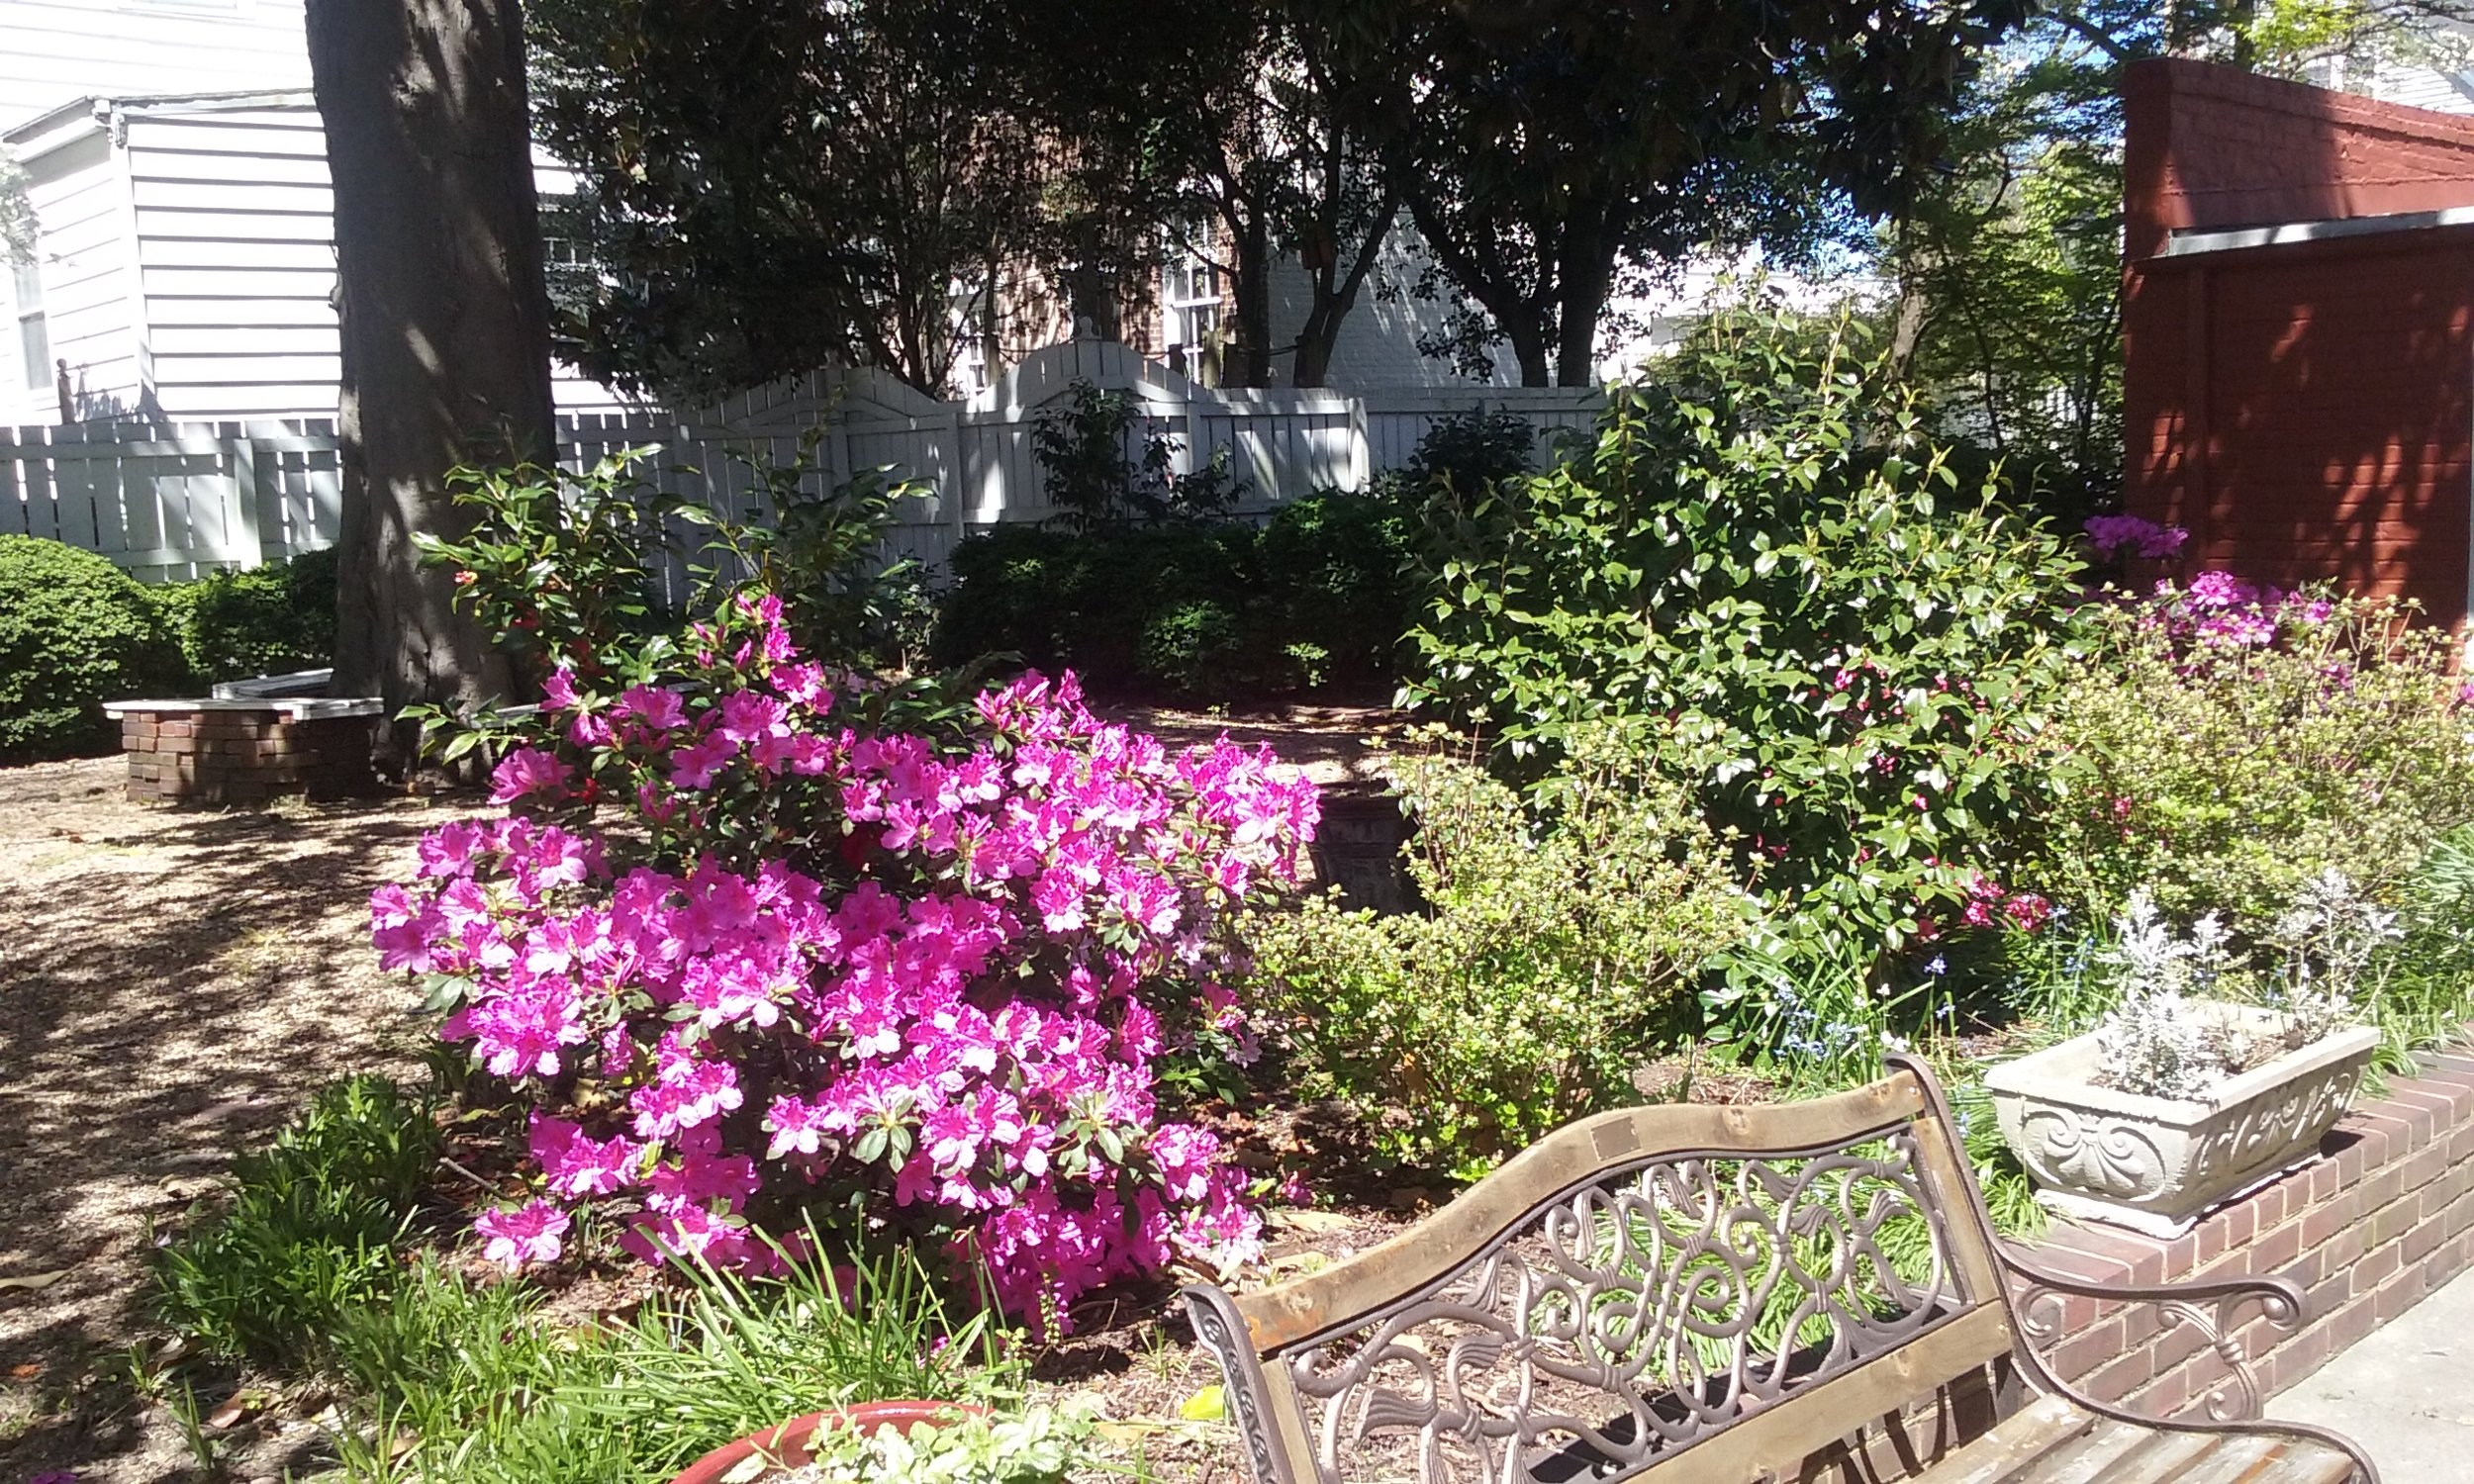 Spring has sprung in the Hill House Garden. The flowers within the garden adorn, and add color to the museum's exterior. Many thanks to one of our board members, John Joyce, for the TLC he gives to the upkeep of the garden.